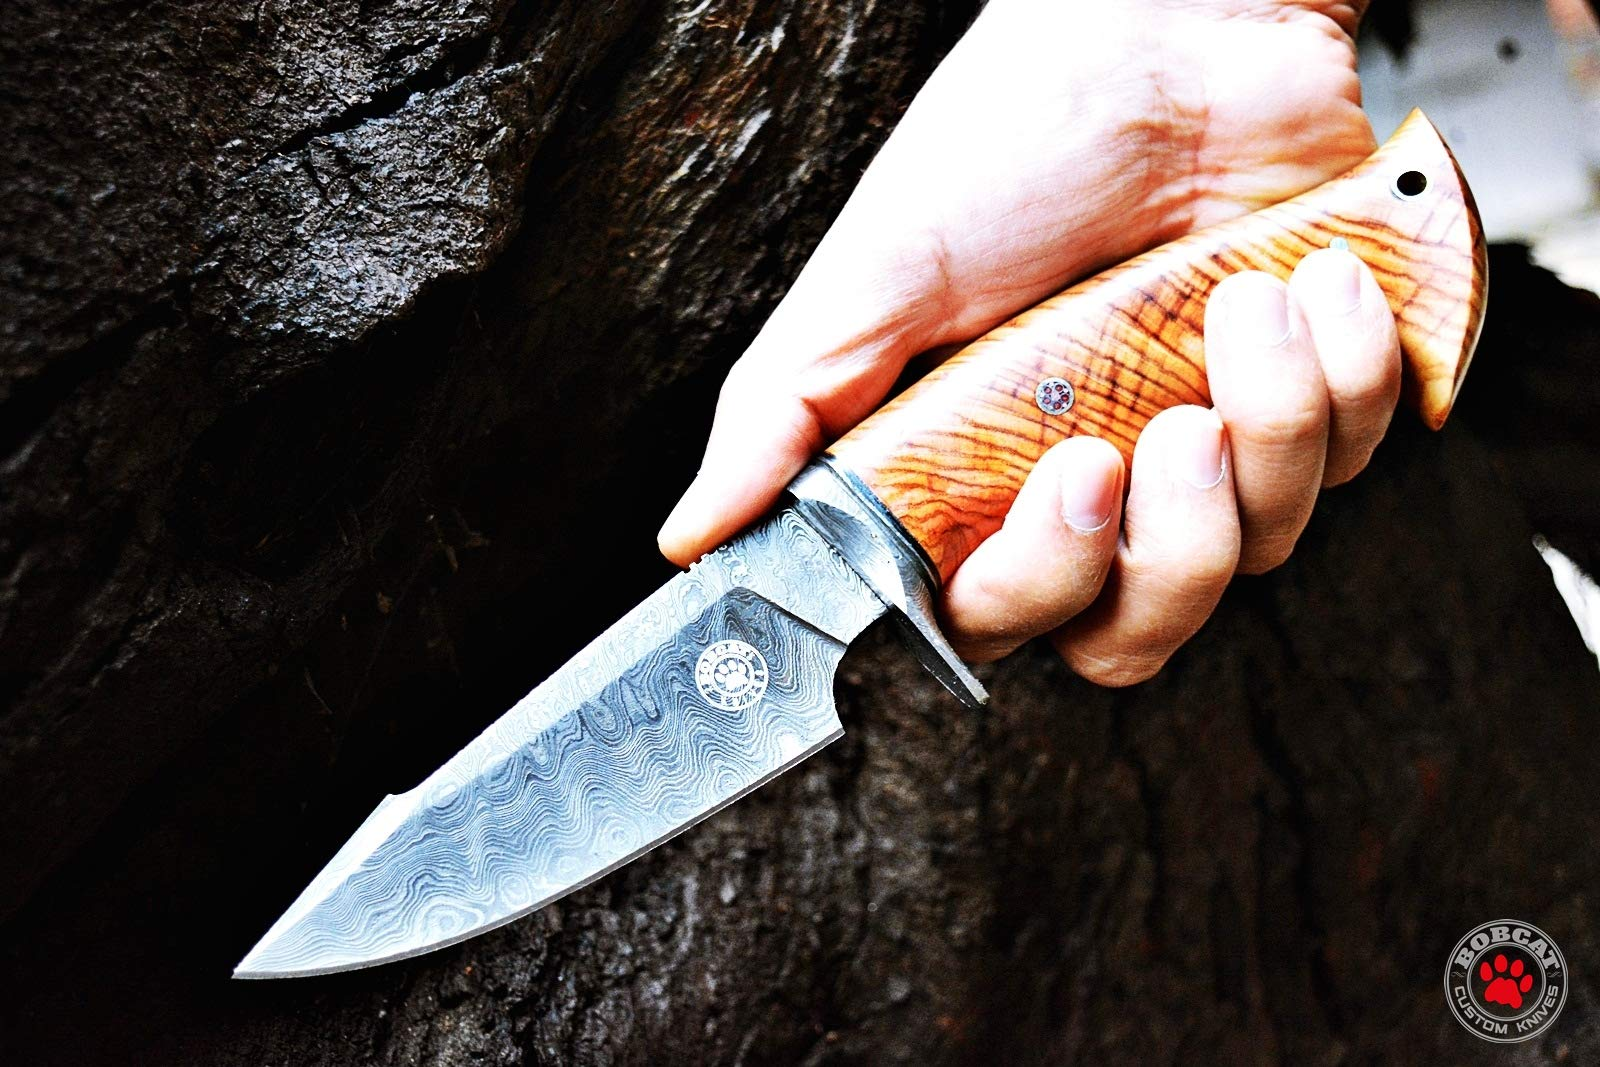 Custom Handmade Hunting Knife Bowie Knife Damascus Steel Survival Knife EDC 10'' Overall Olive Wood with Sheath by Bobcat Knives (Image #5)